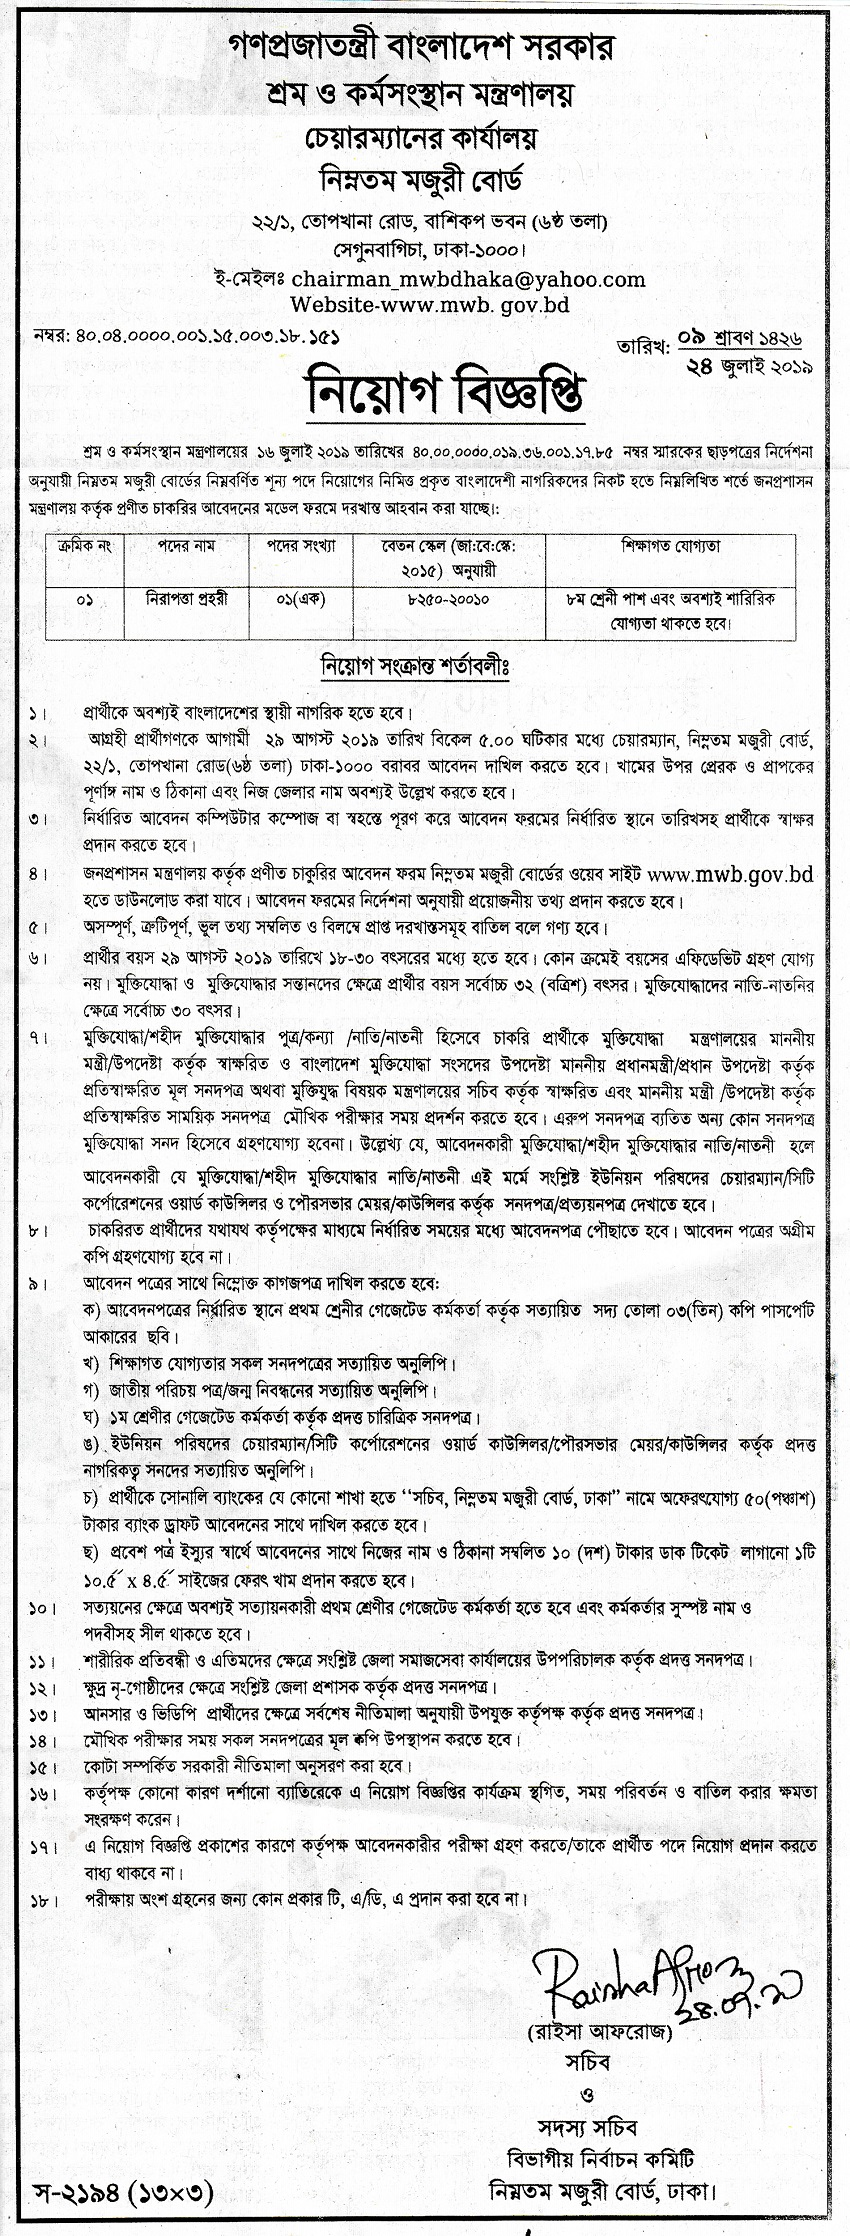 Ministry of Labour and Employment Job Circular 2019